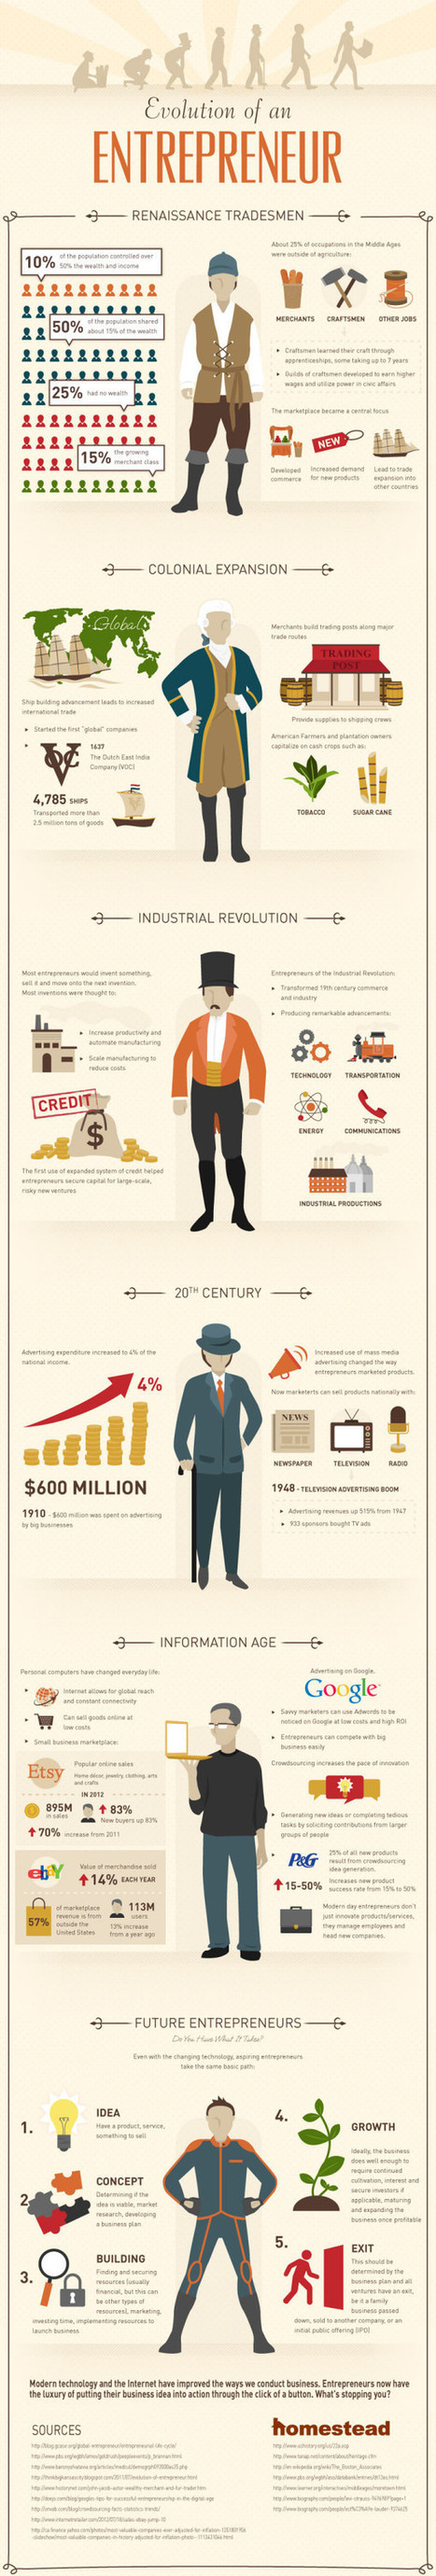 The evolution of an entrepreneur [infographic] | How to set up a Consulting Services Business | Scoop.it